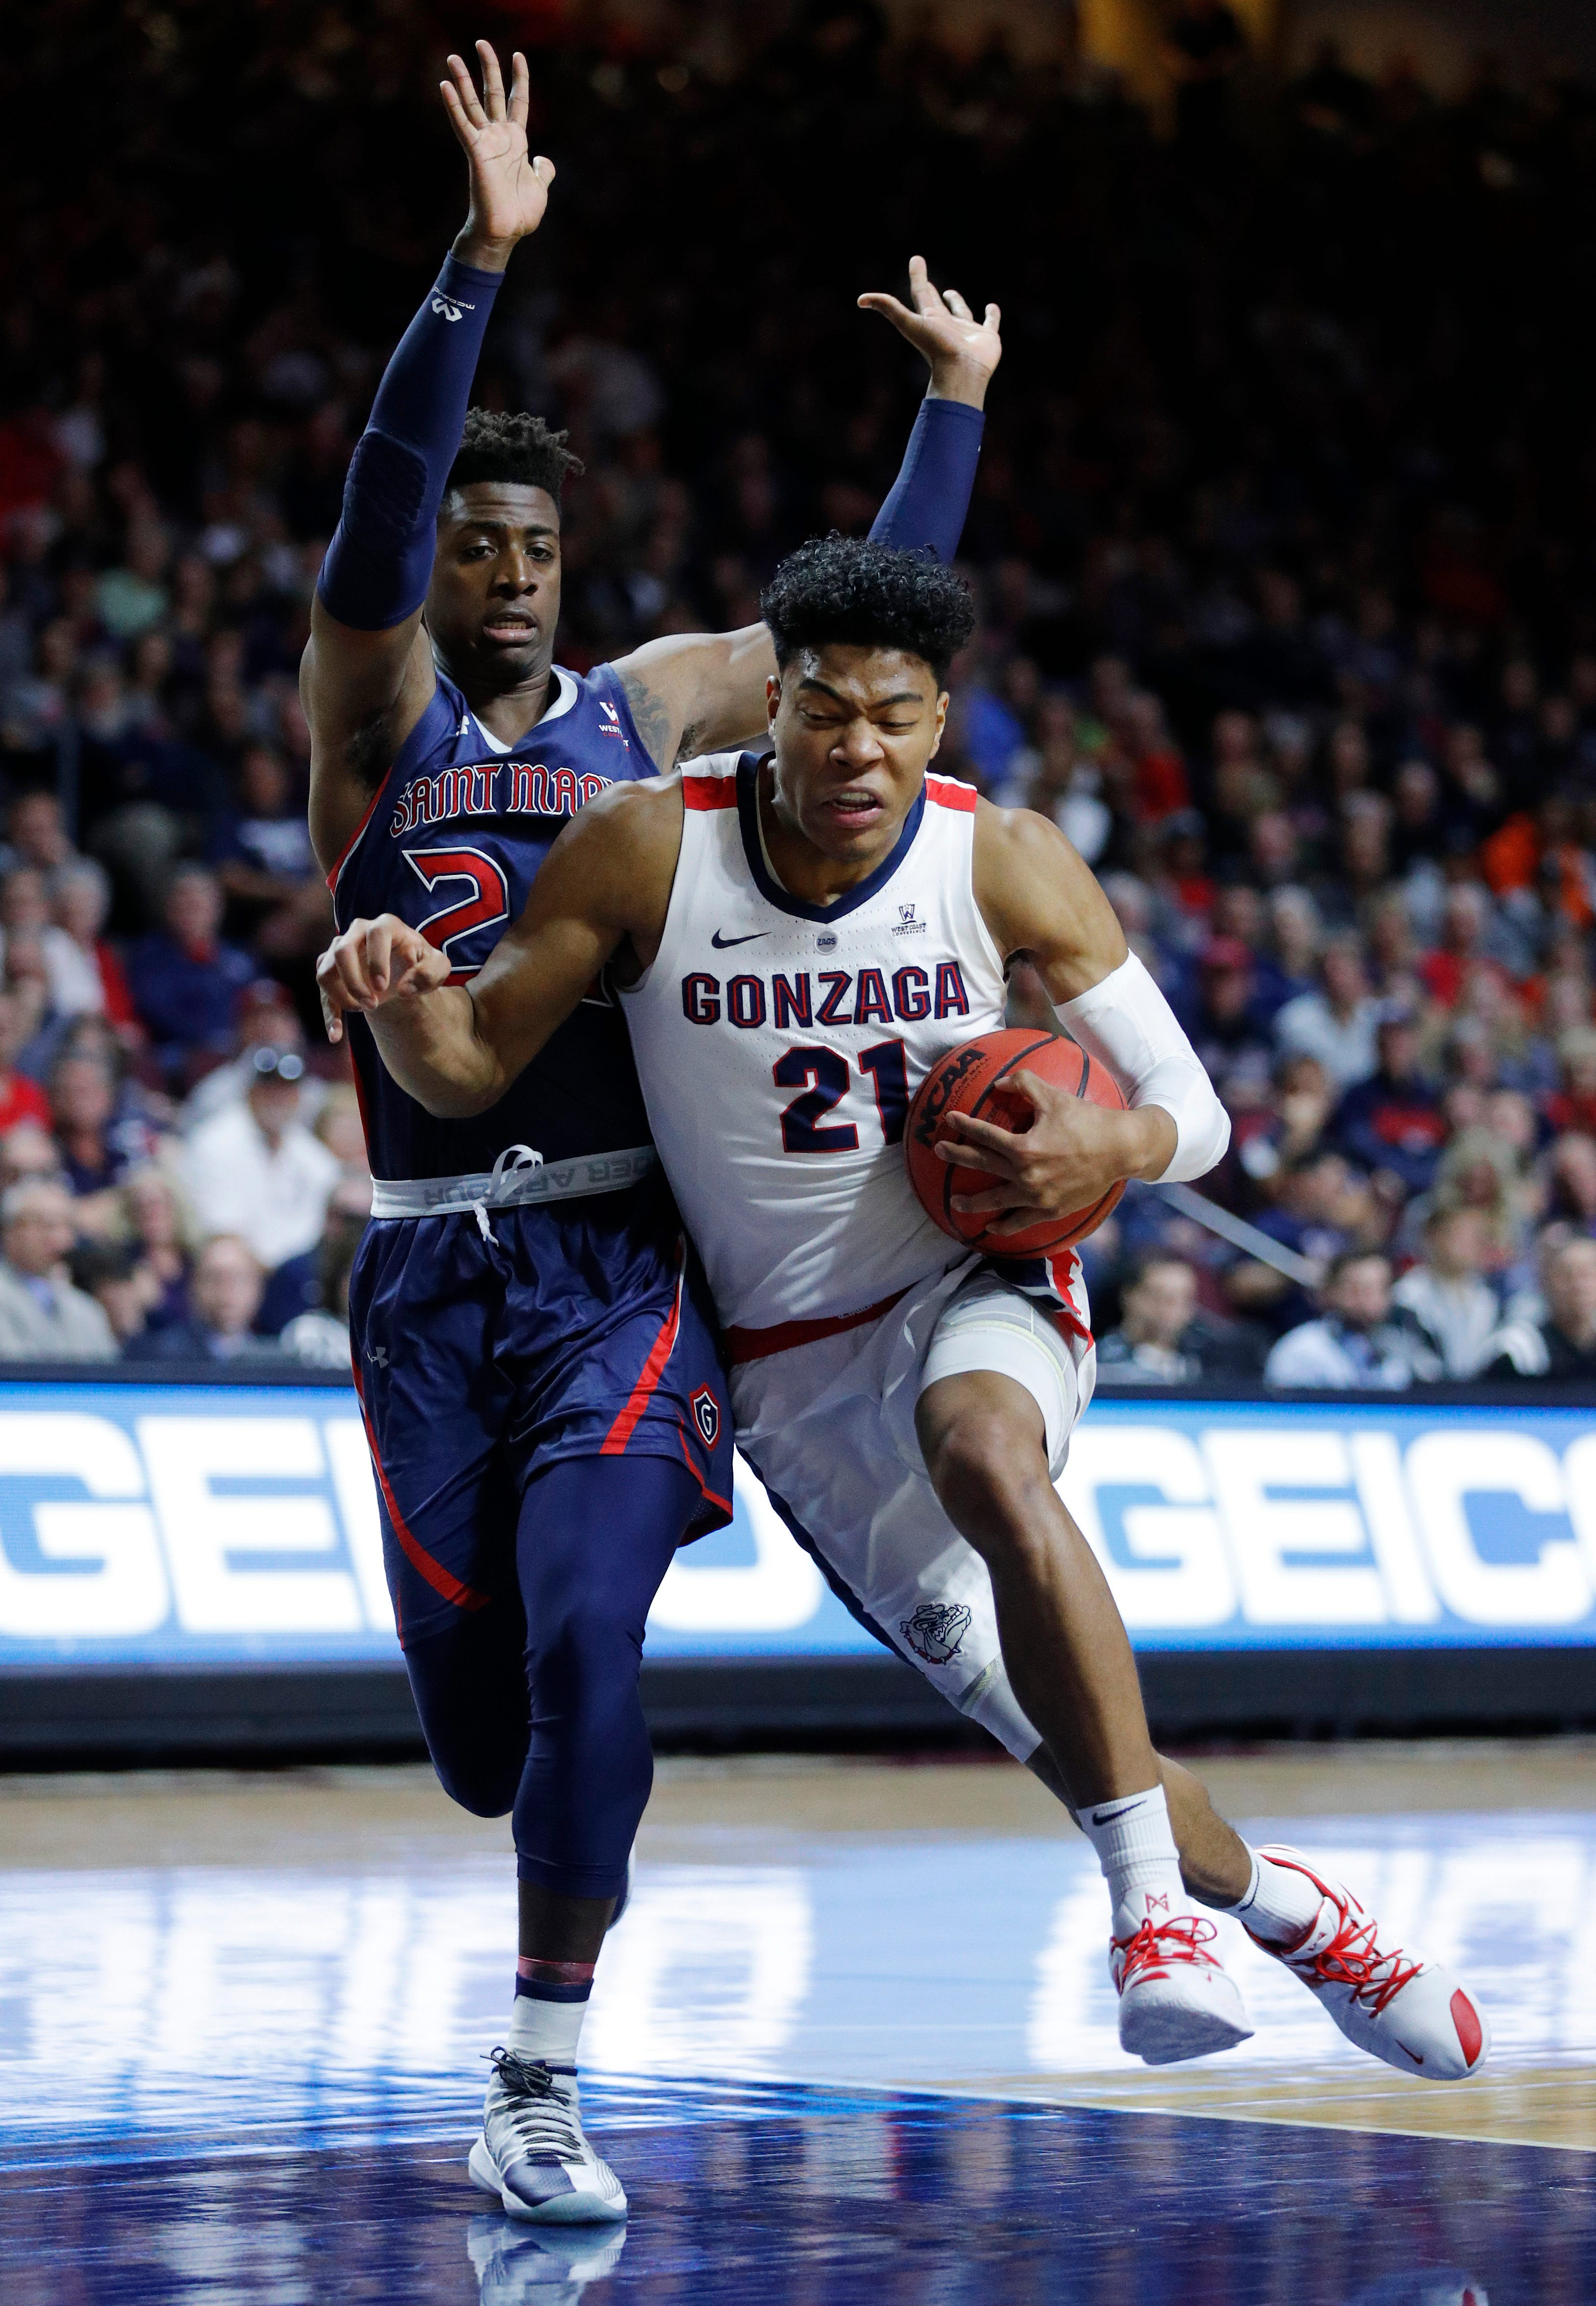 Saint Mary's upsets No. 1 Gonzaga to win WCC tournament title